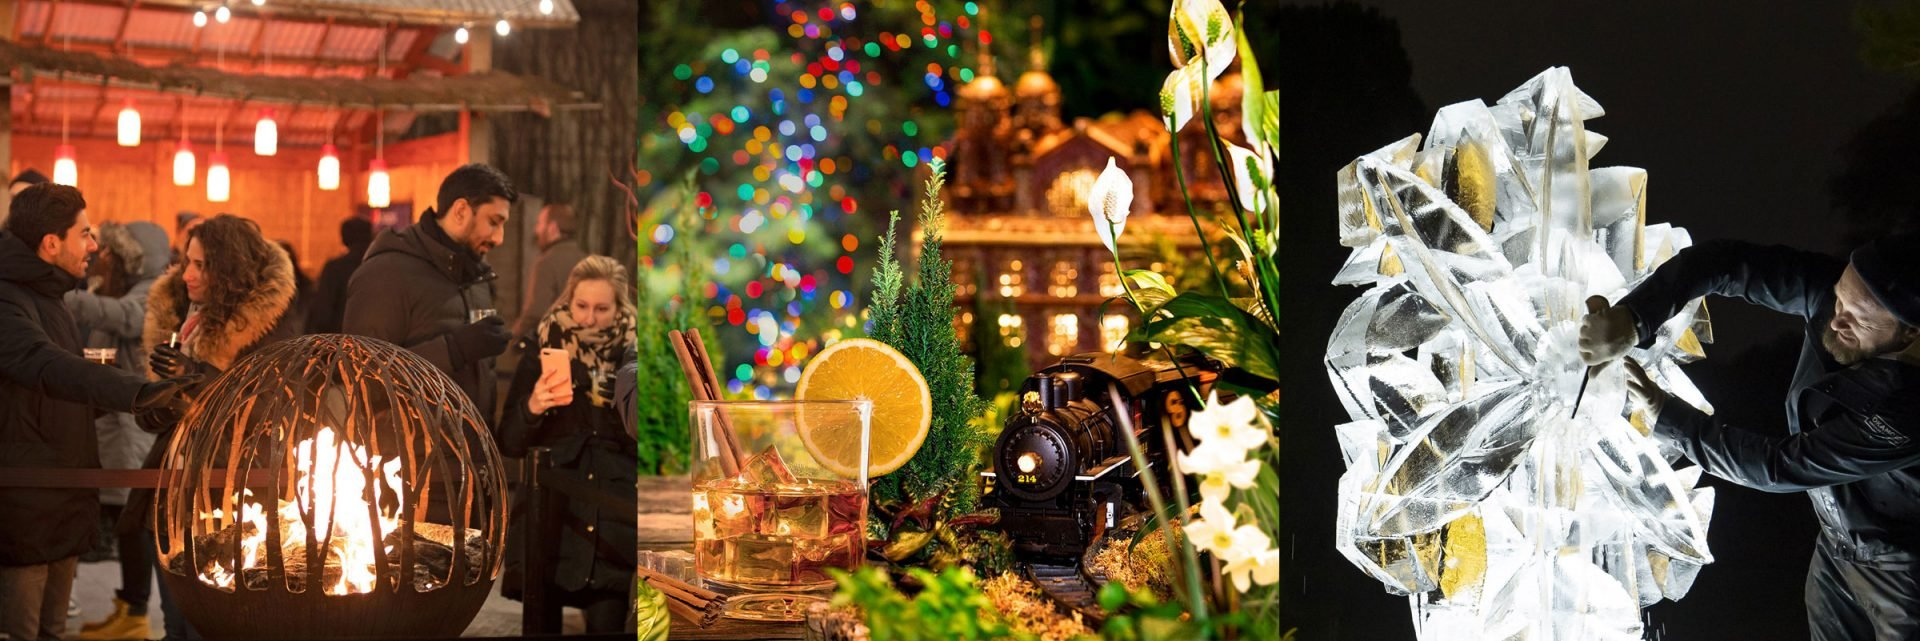 Holiday Hot Tickets: Joy to the World with Heart Warming NYC Activities - NYBG Holiday Train Show